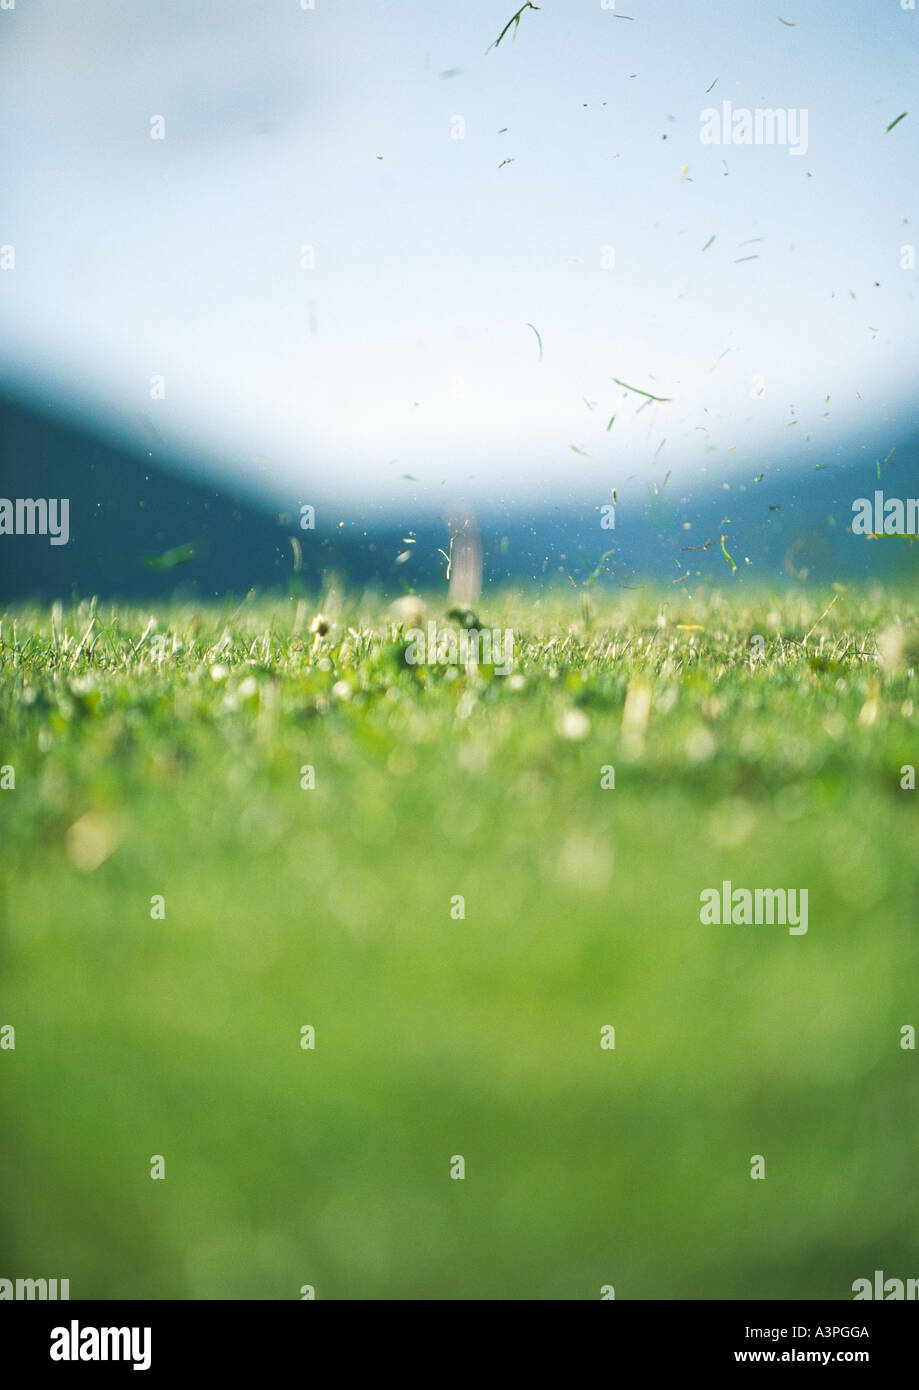 Grass flying in air after tee-off - Stock Image